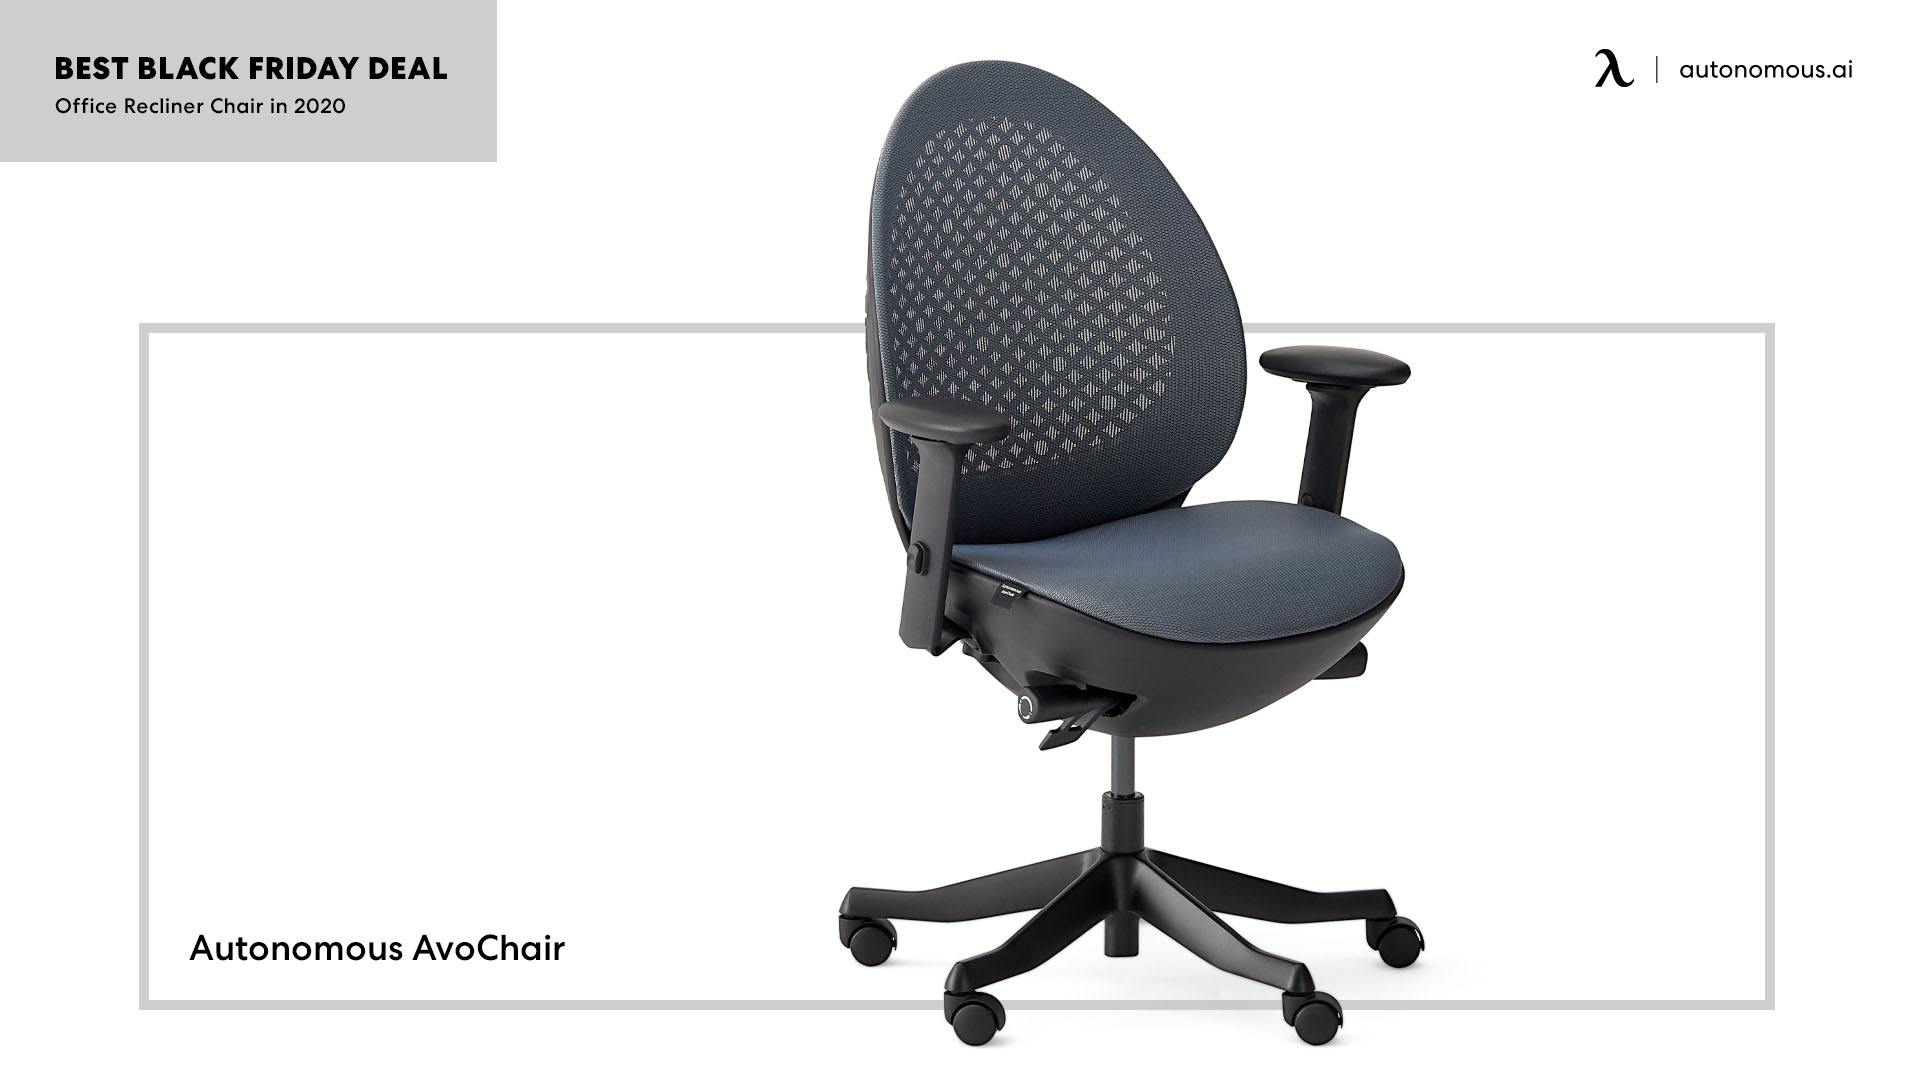 Another product of Autonomous is the AvoChair